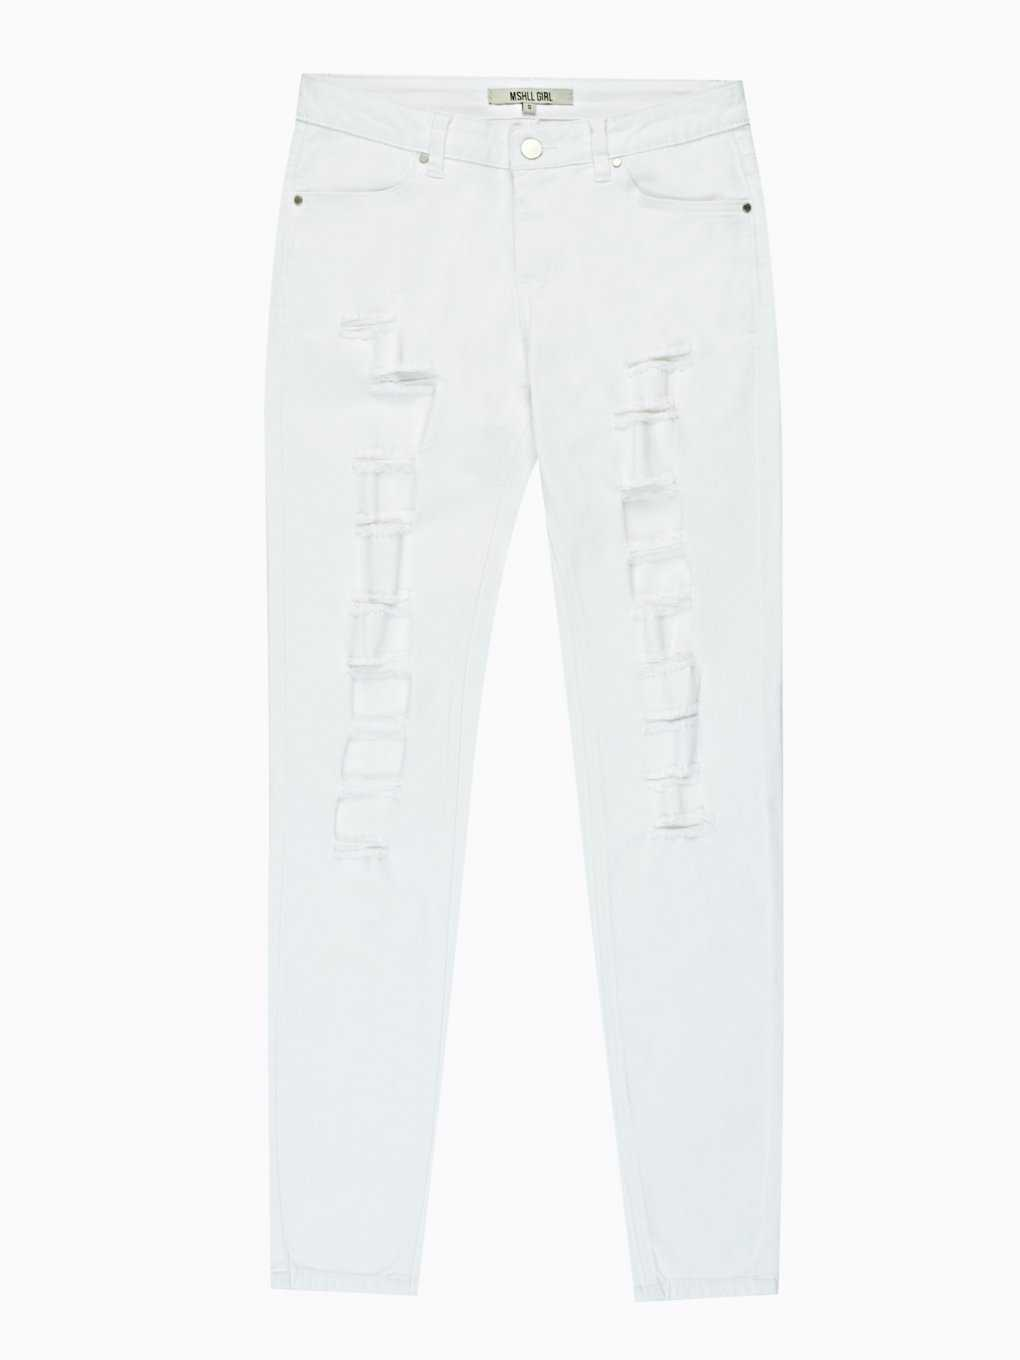 Distressed skinny trousers